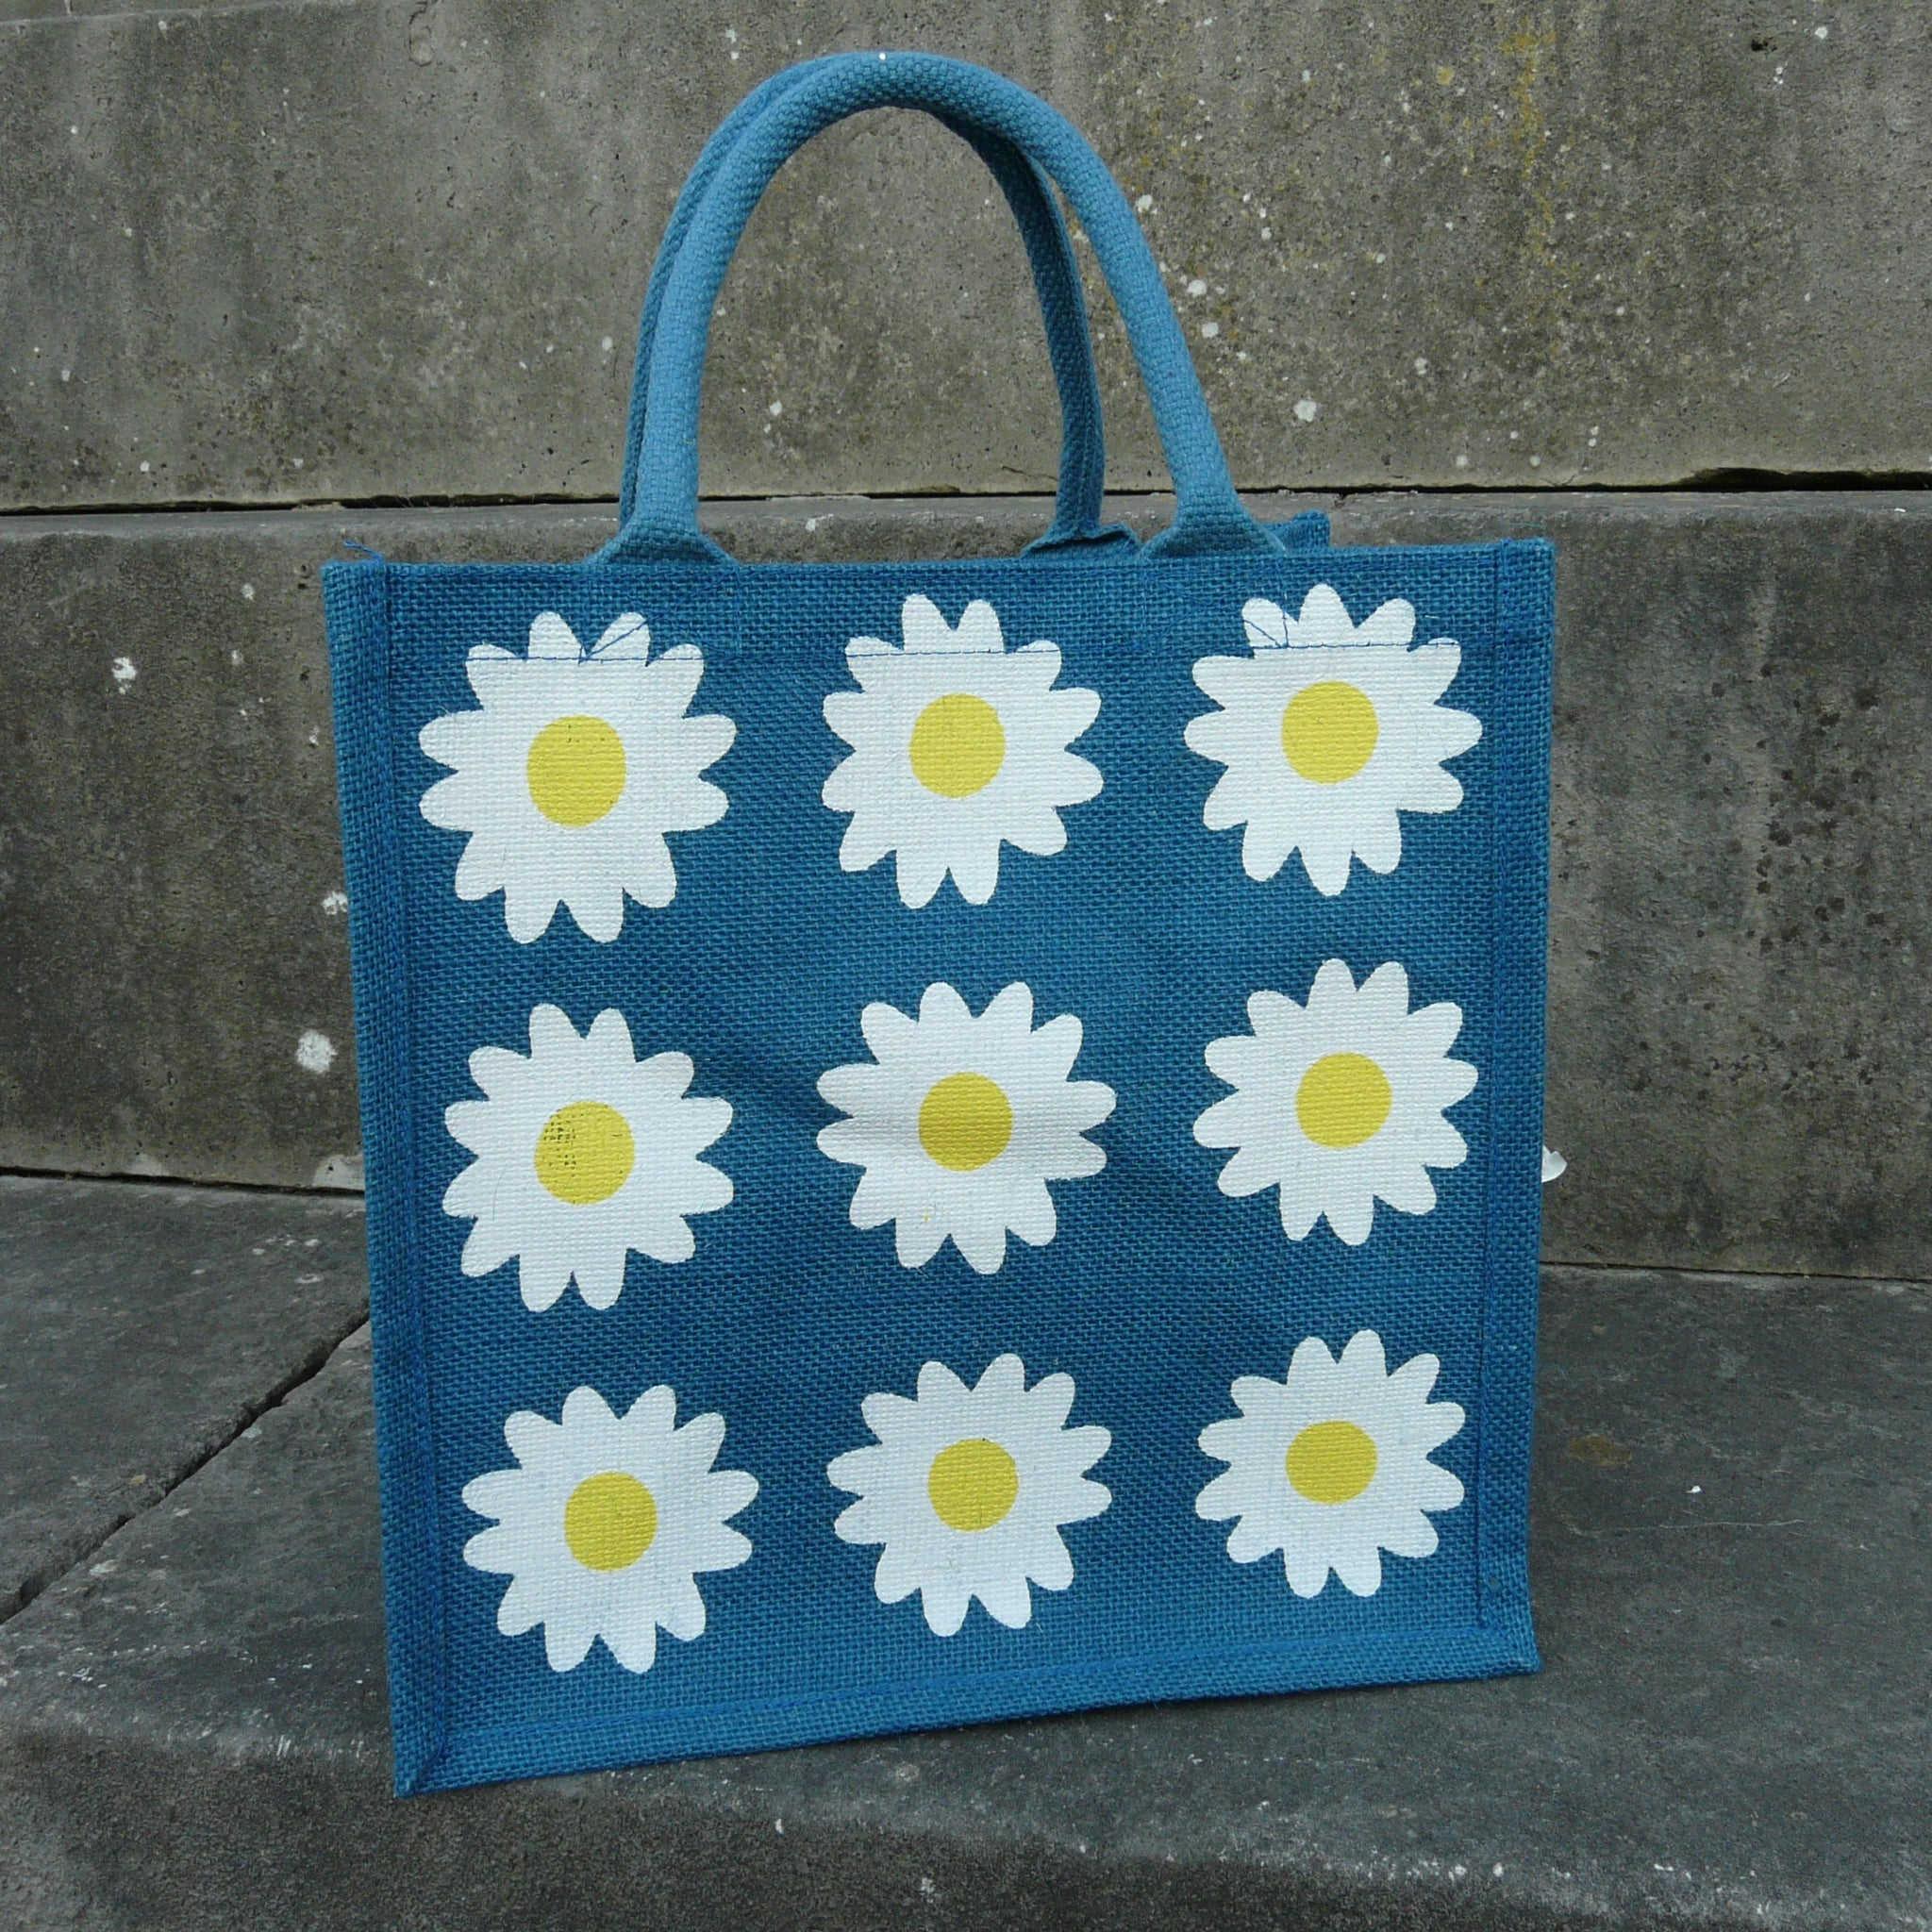 fair-trade-blue-jute-shopping-bag-square-9-white-daisies